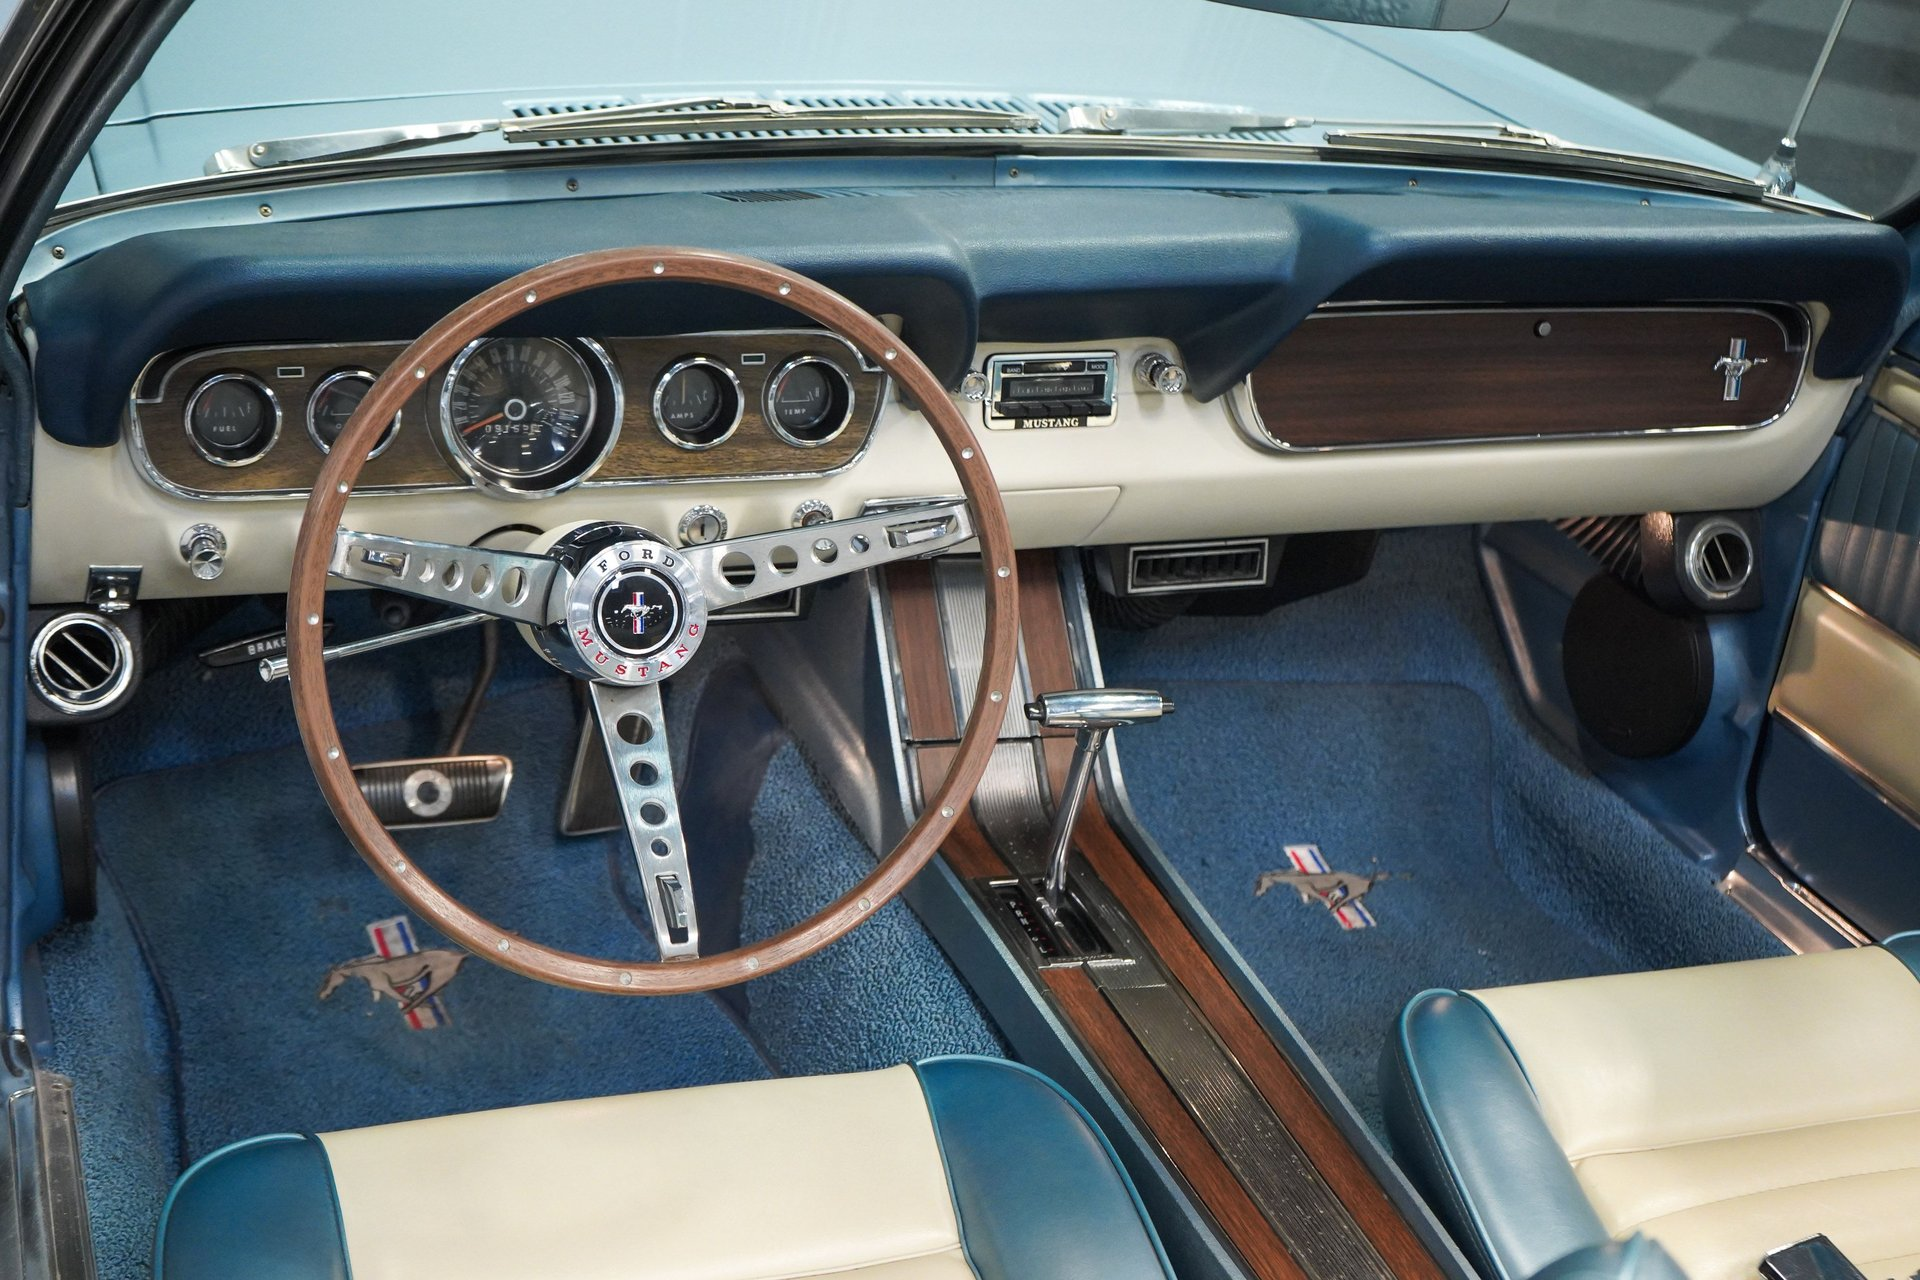 Mustang cabriolet Pony Deluxe 289 ci V8 Automatique 1966 43 148€